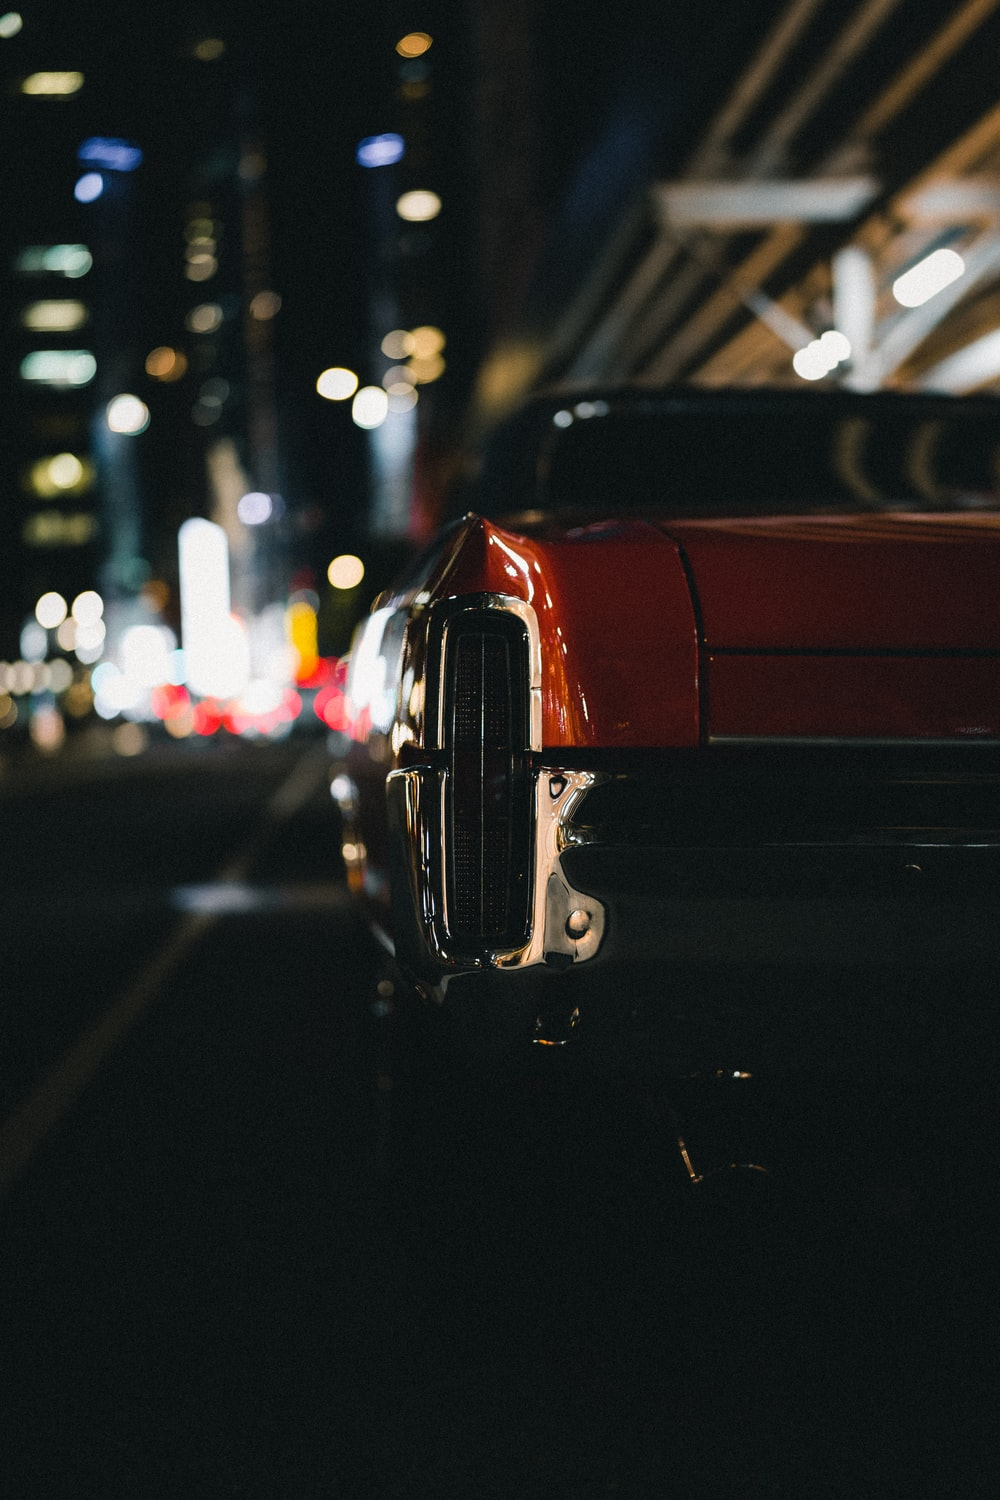 red car on the road during night time